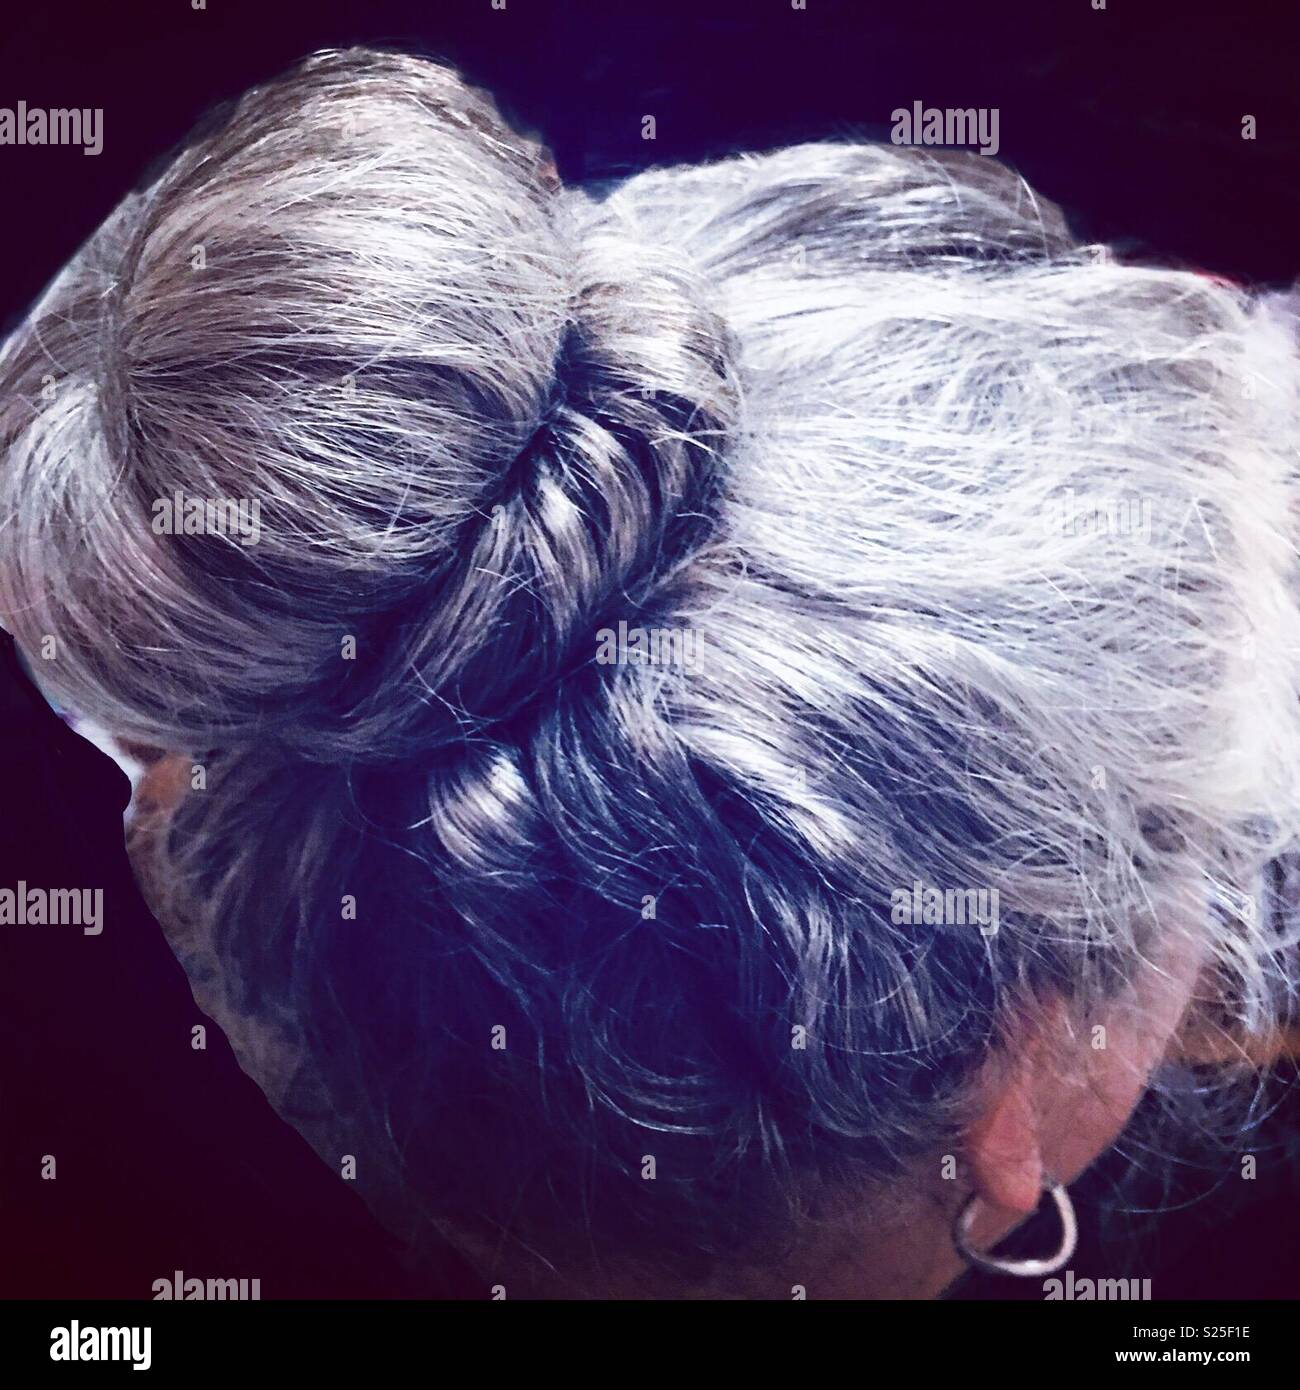 Natural Grey hair in bun on 40s age woman - Stock Image